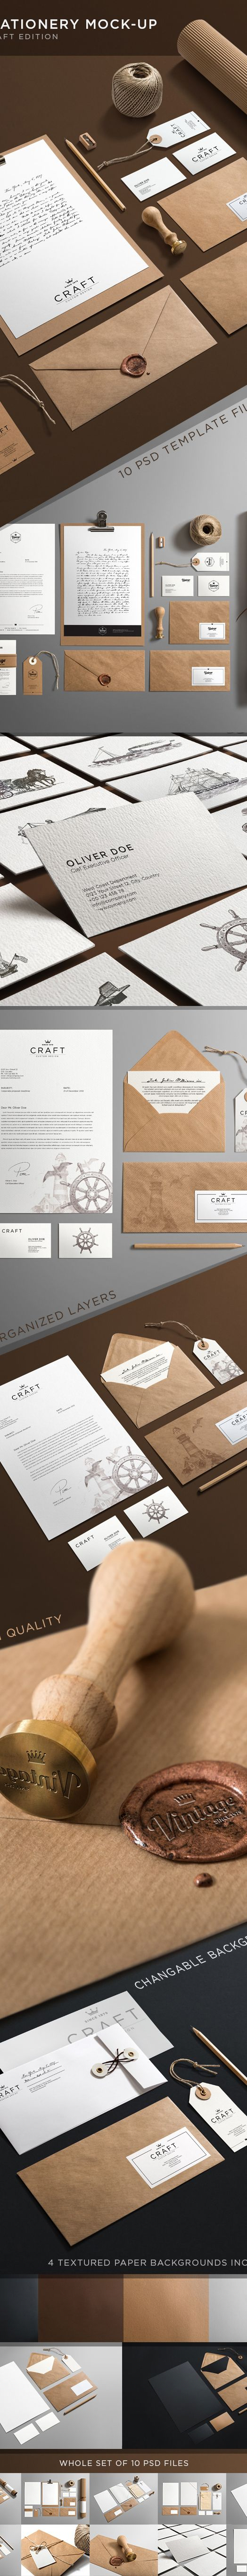 Your Daily Design Inspiration #5